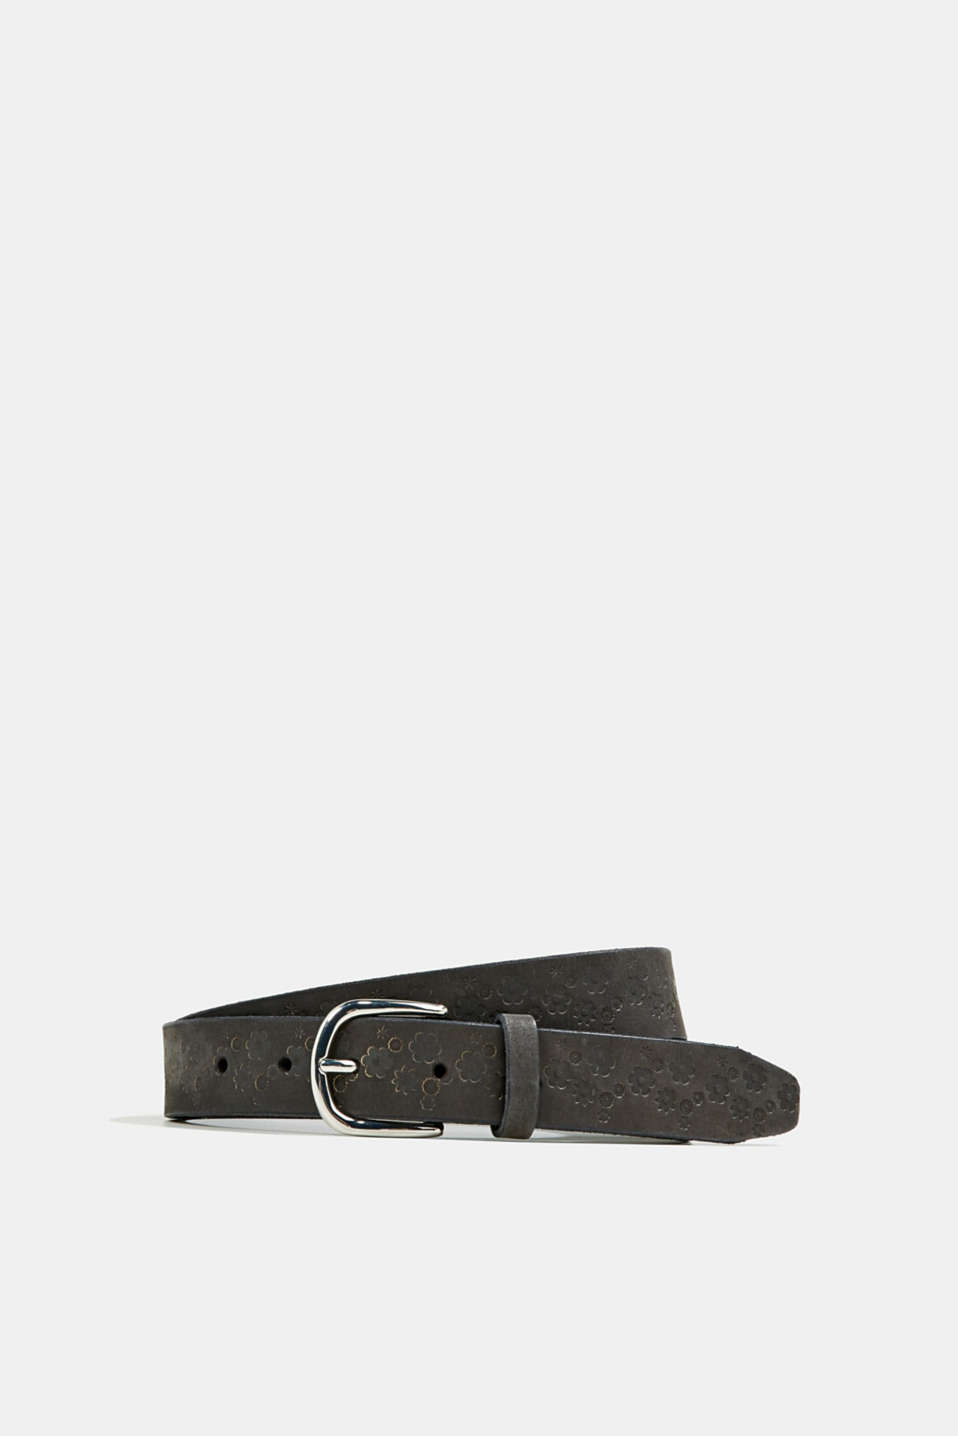 Esprit - Made of leather: Embossed belt